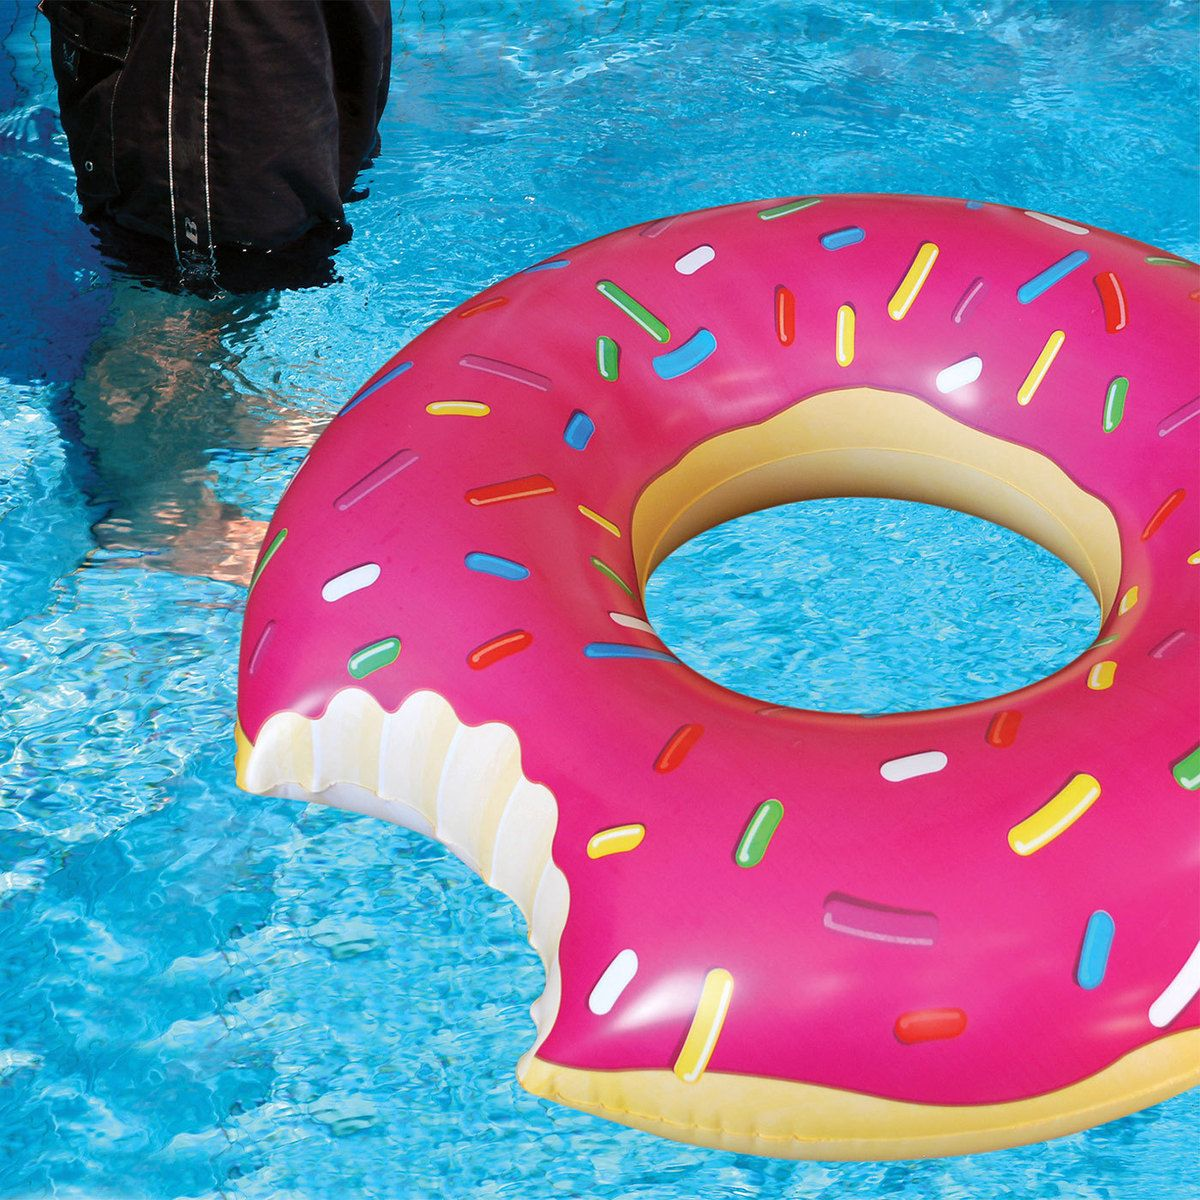 Flotadores Para Piscinas Donut Pool Float Shades Of Homer Simpson Wanna